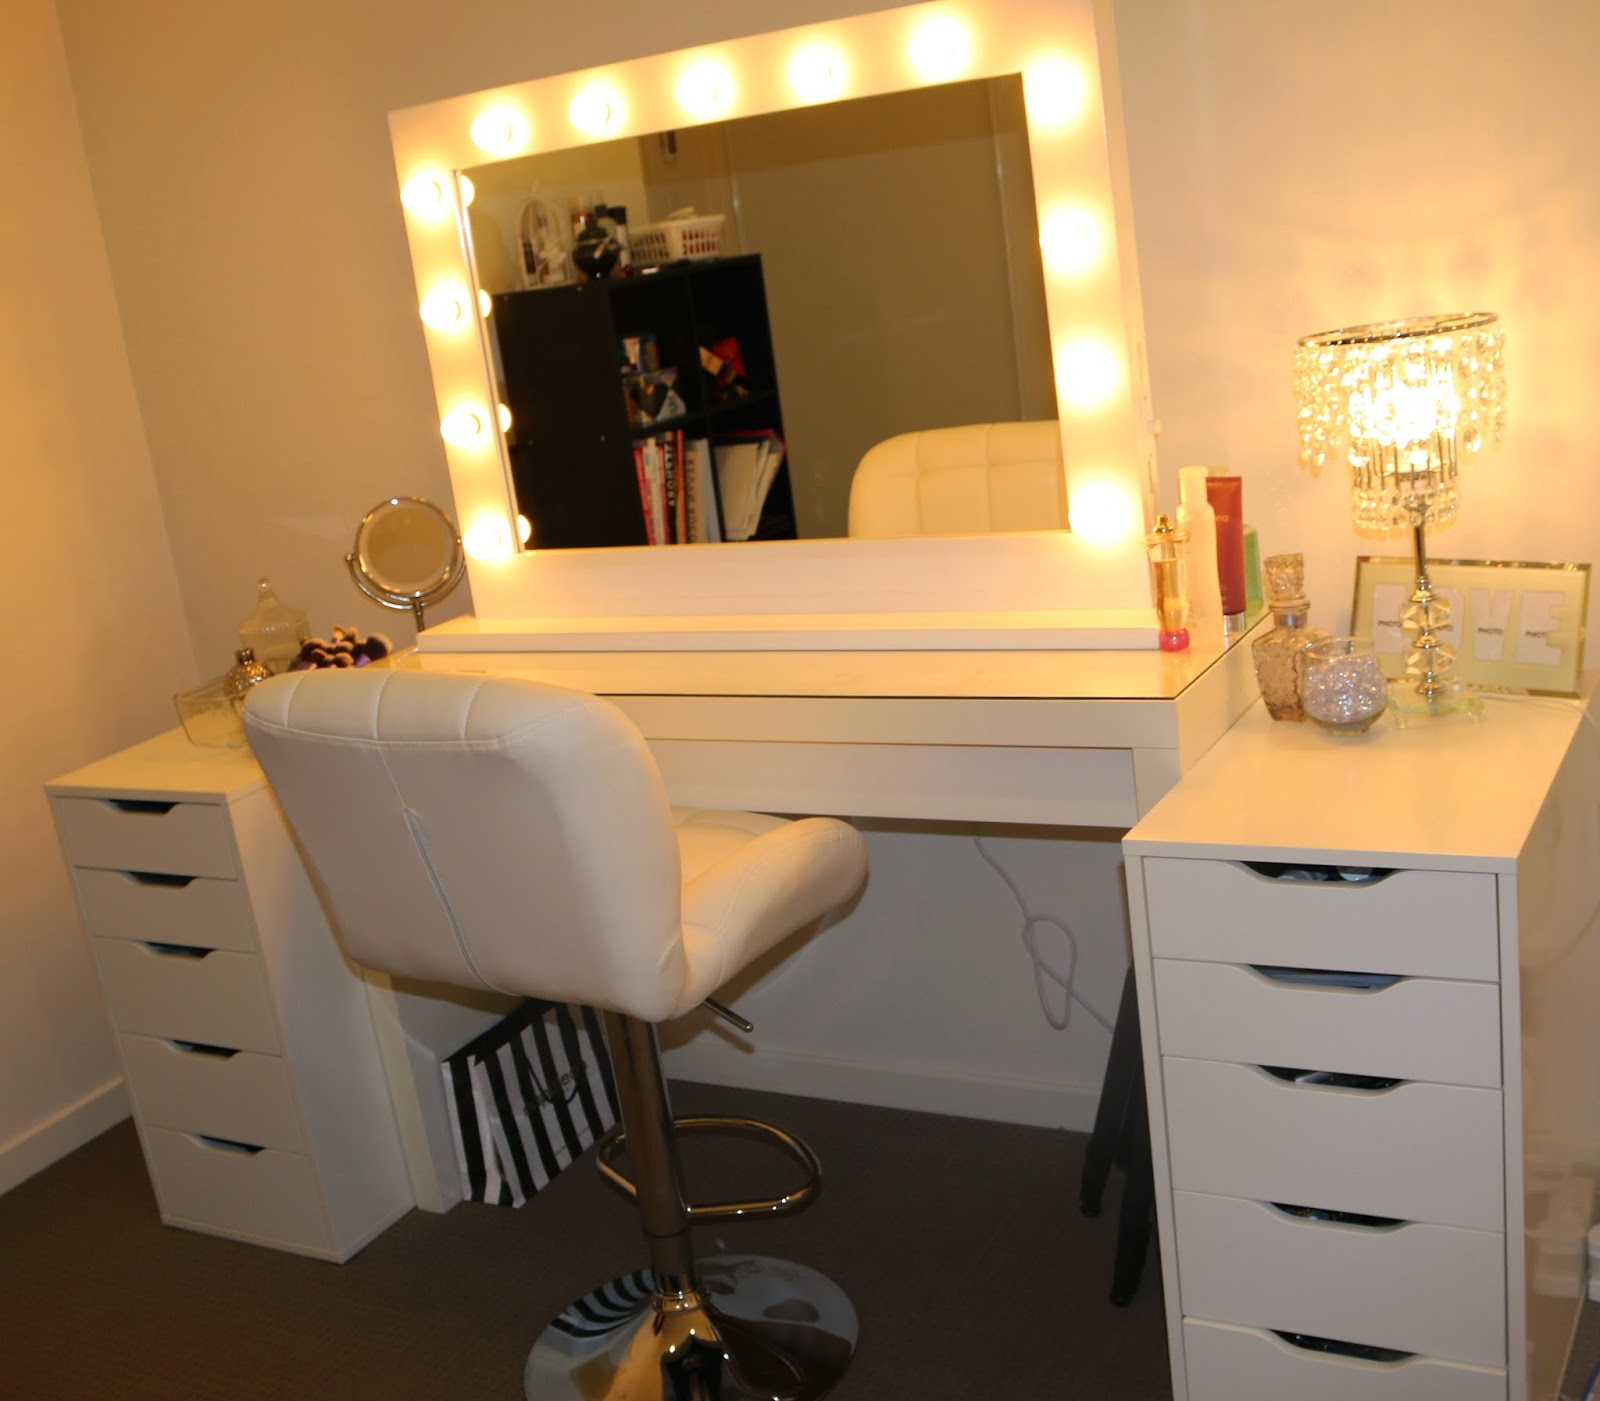 Mirrors: Led Hollywood Mirror | Hollywood Vanity Mirror With Lights ...